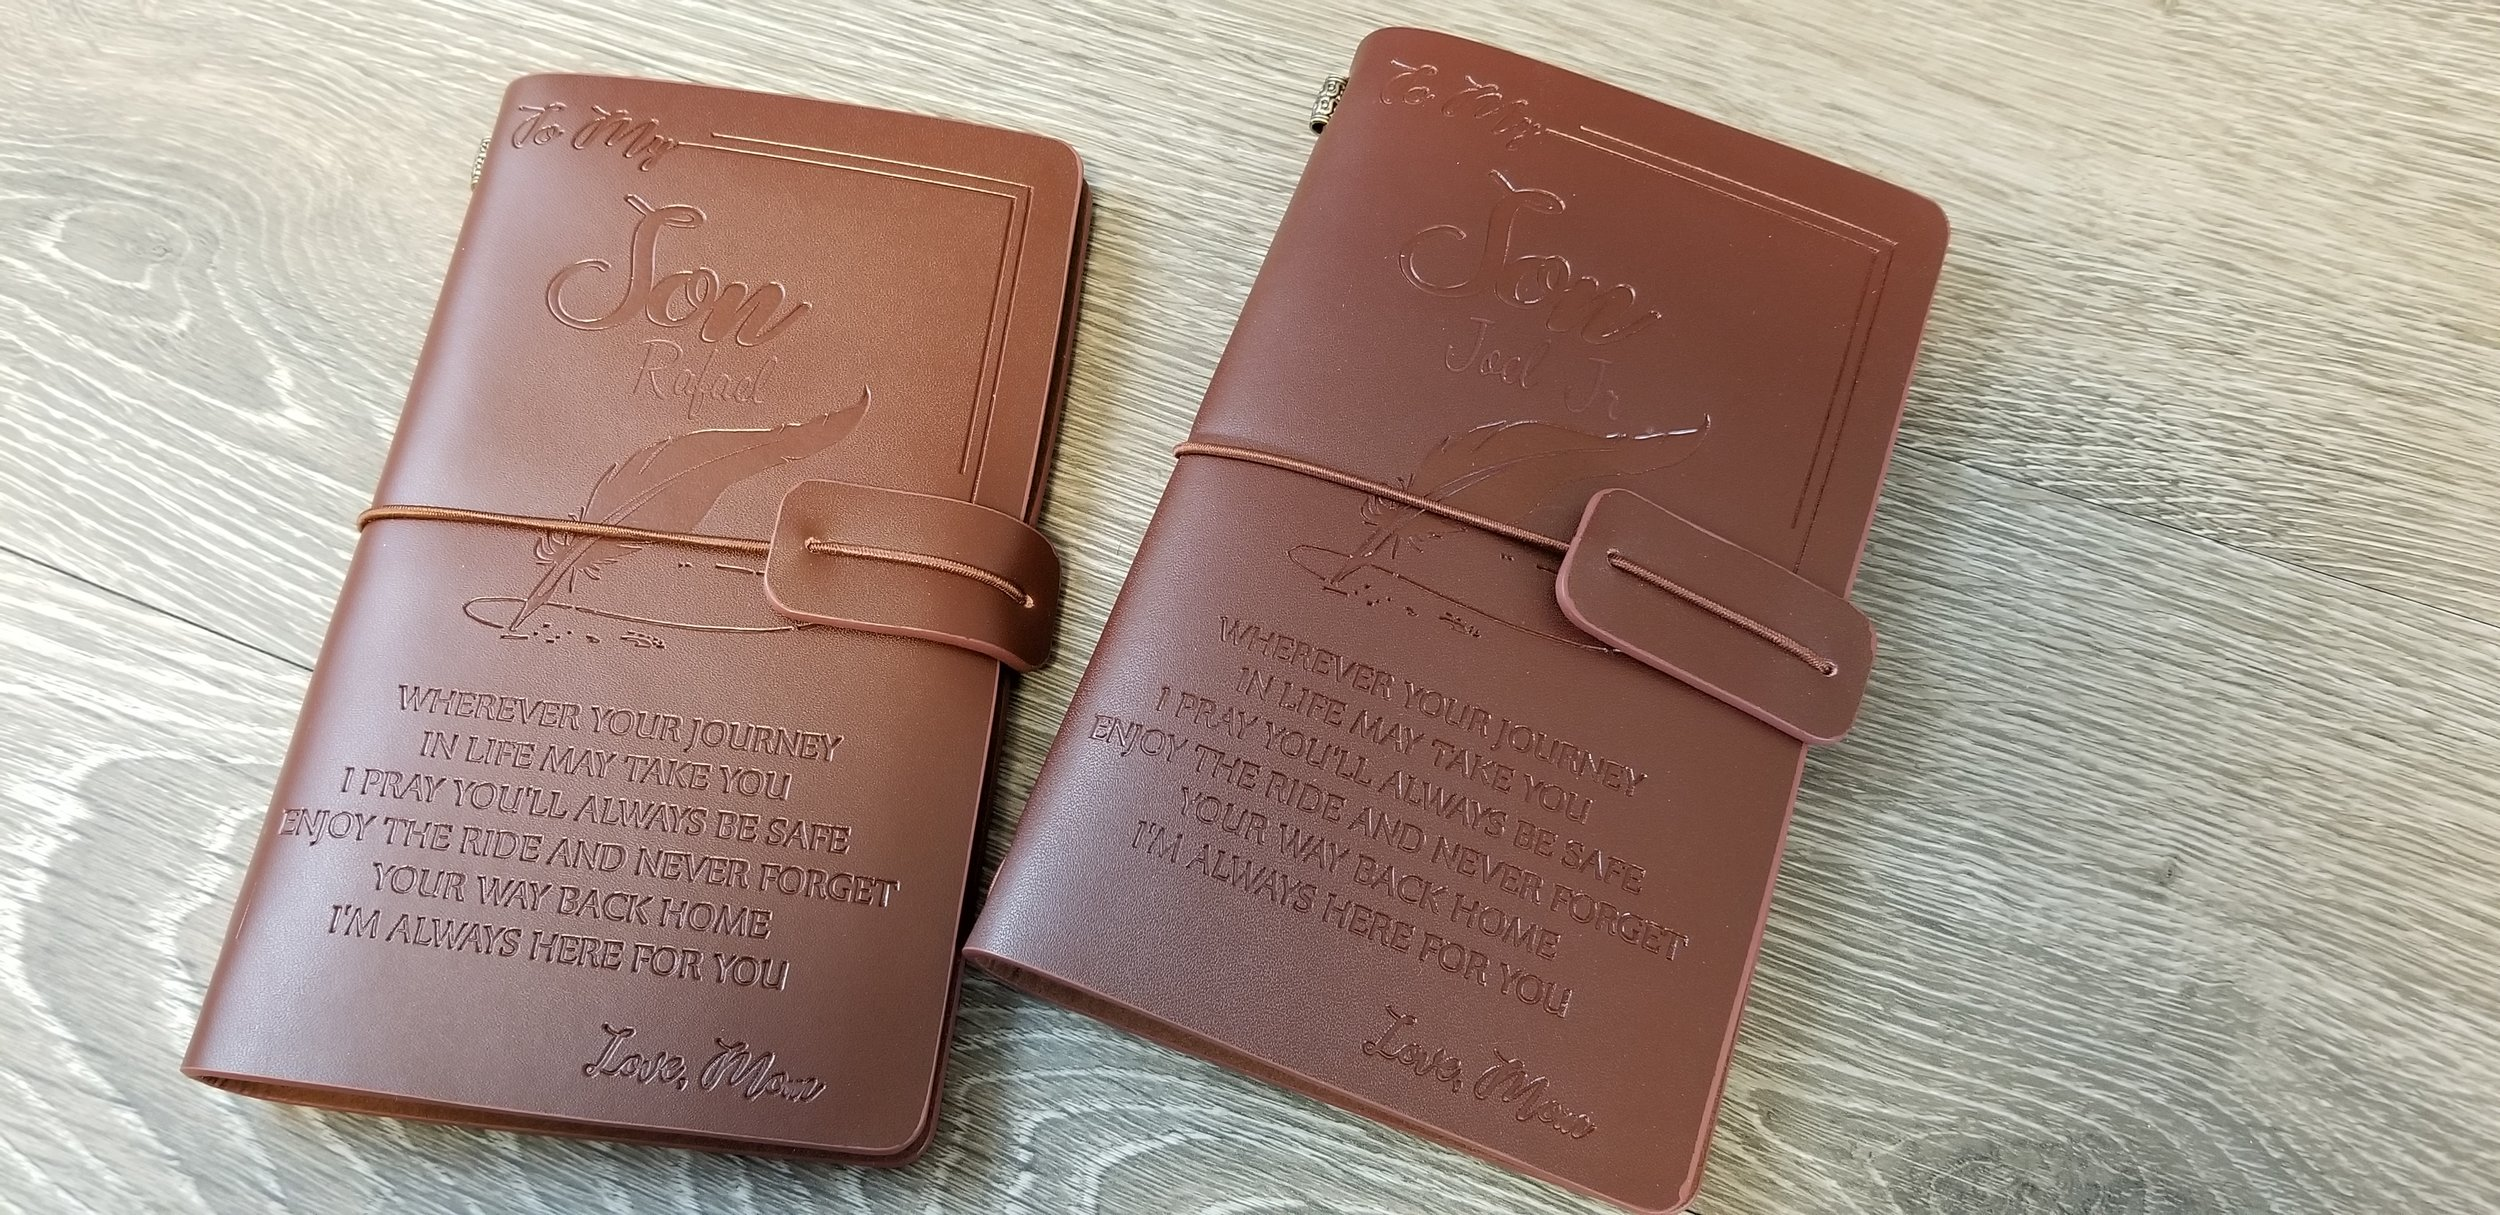 Engraved Leather Journal - Leather Engraving - Custom Engraving Services - Engrave It Houston